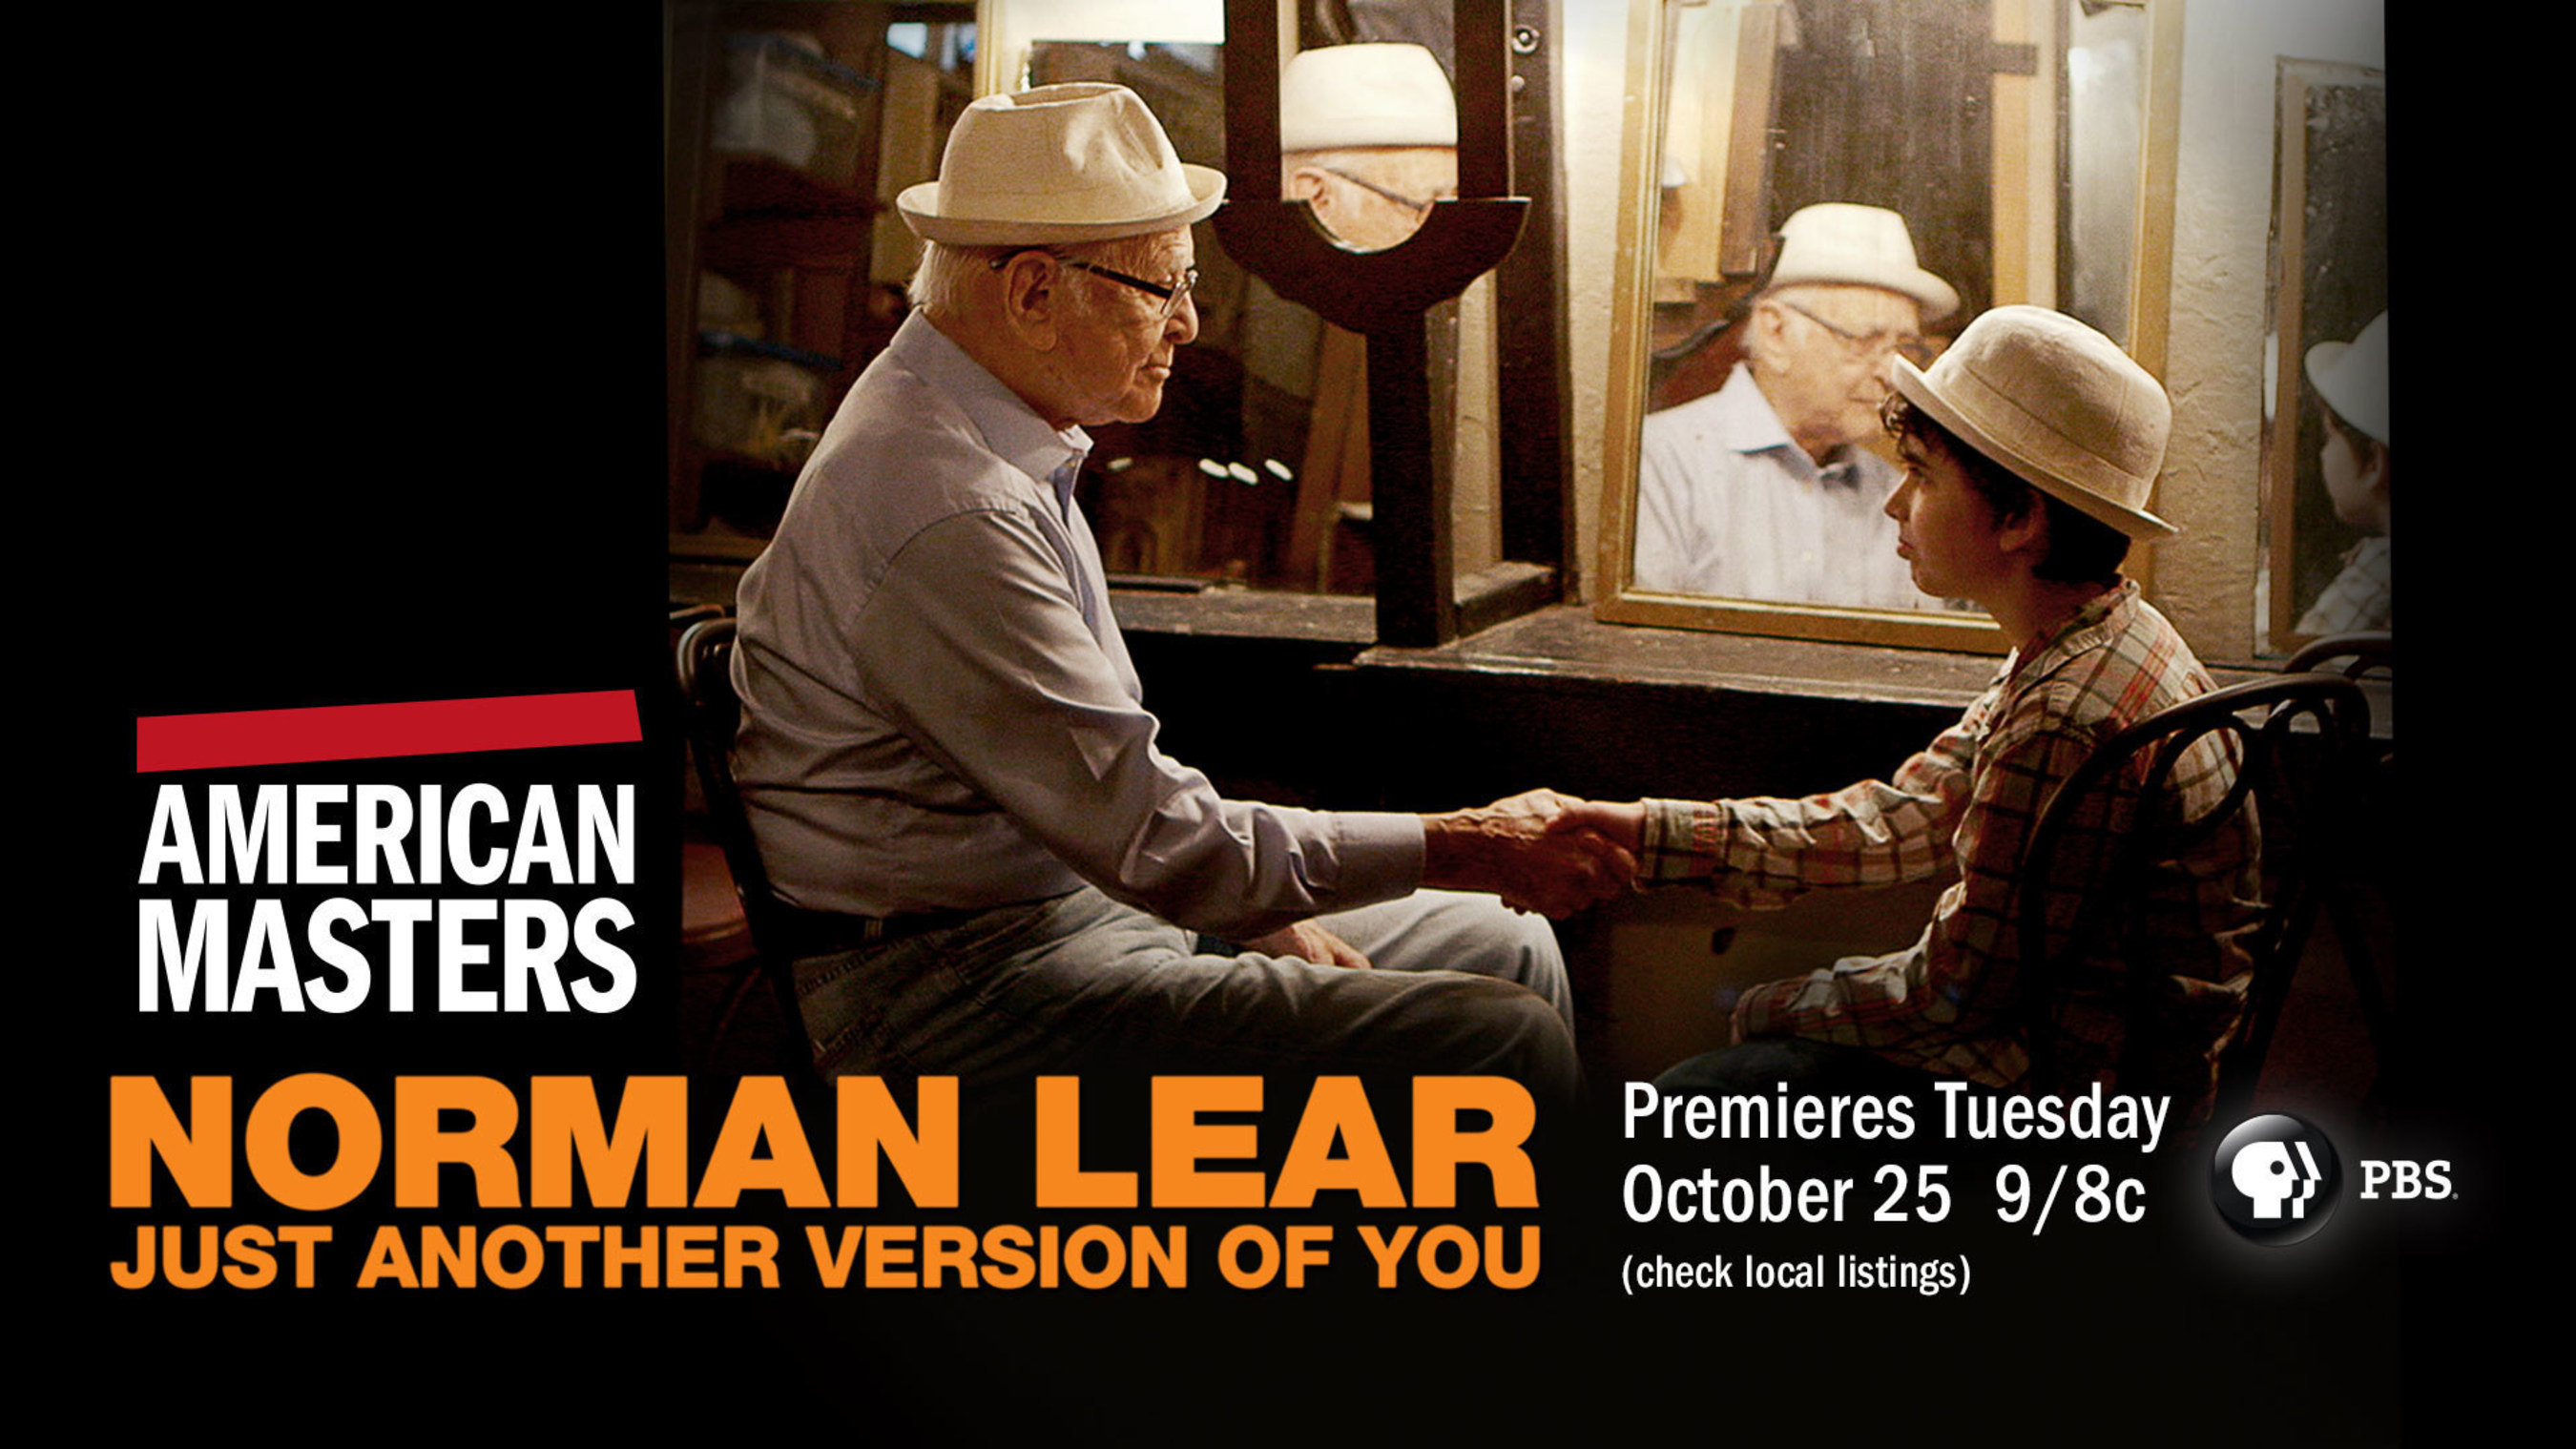 First Documentary About Legendary Showrunner, American Masters -- Norman Lear: Just Another Version of You, Premieres Nationwide Tuesday, October 25 on PBS